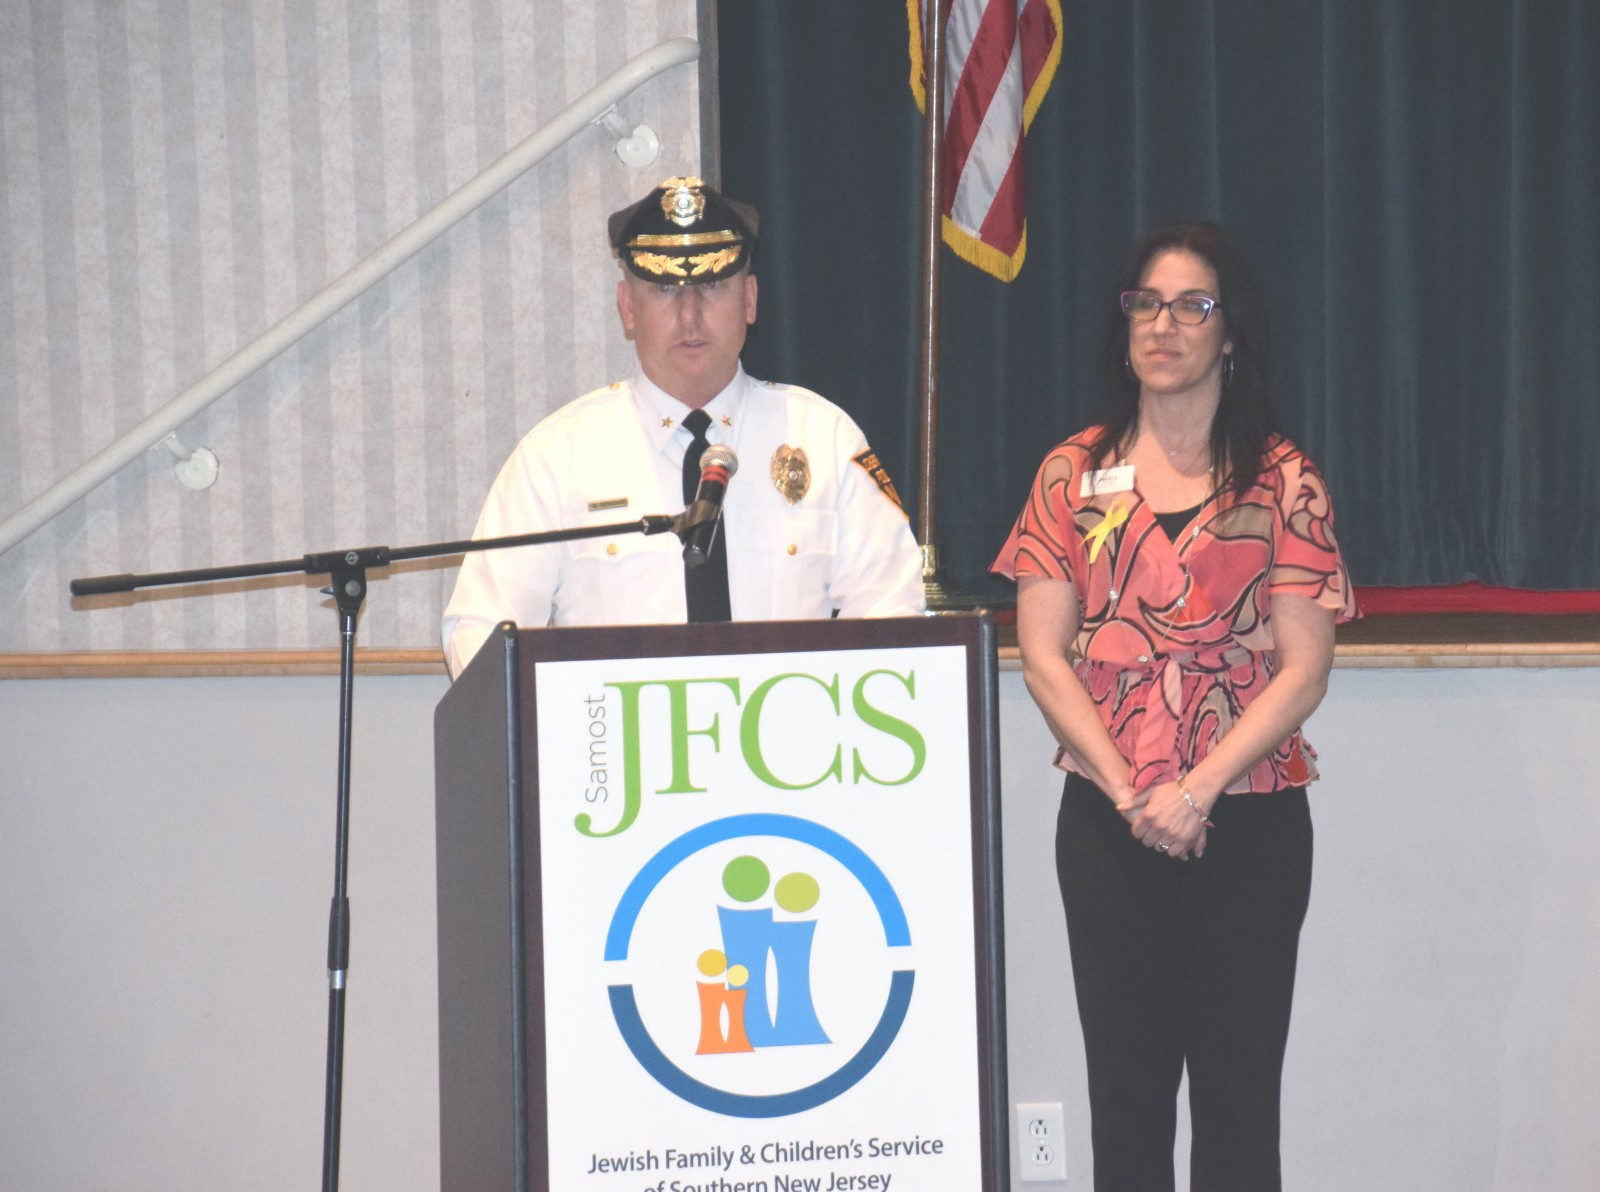 jfcs and cherry hill police team up to get community talking about